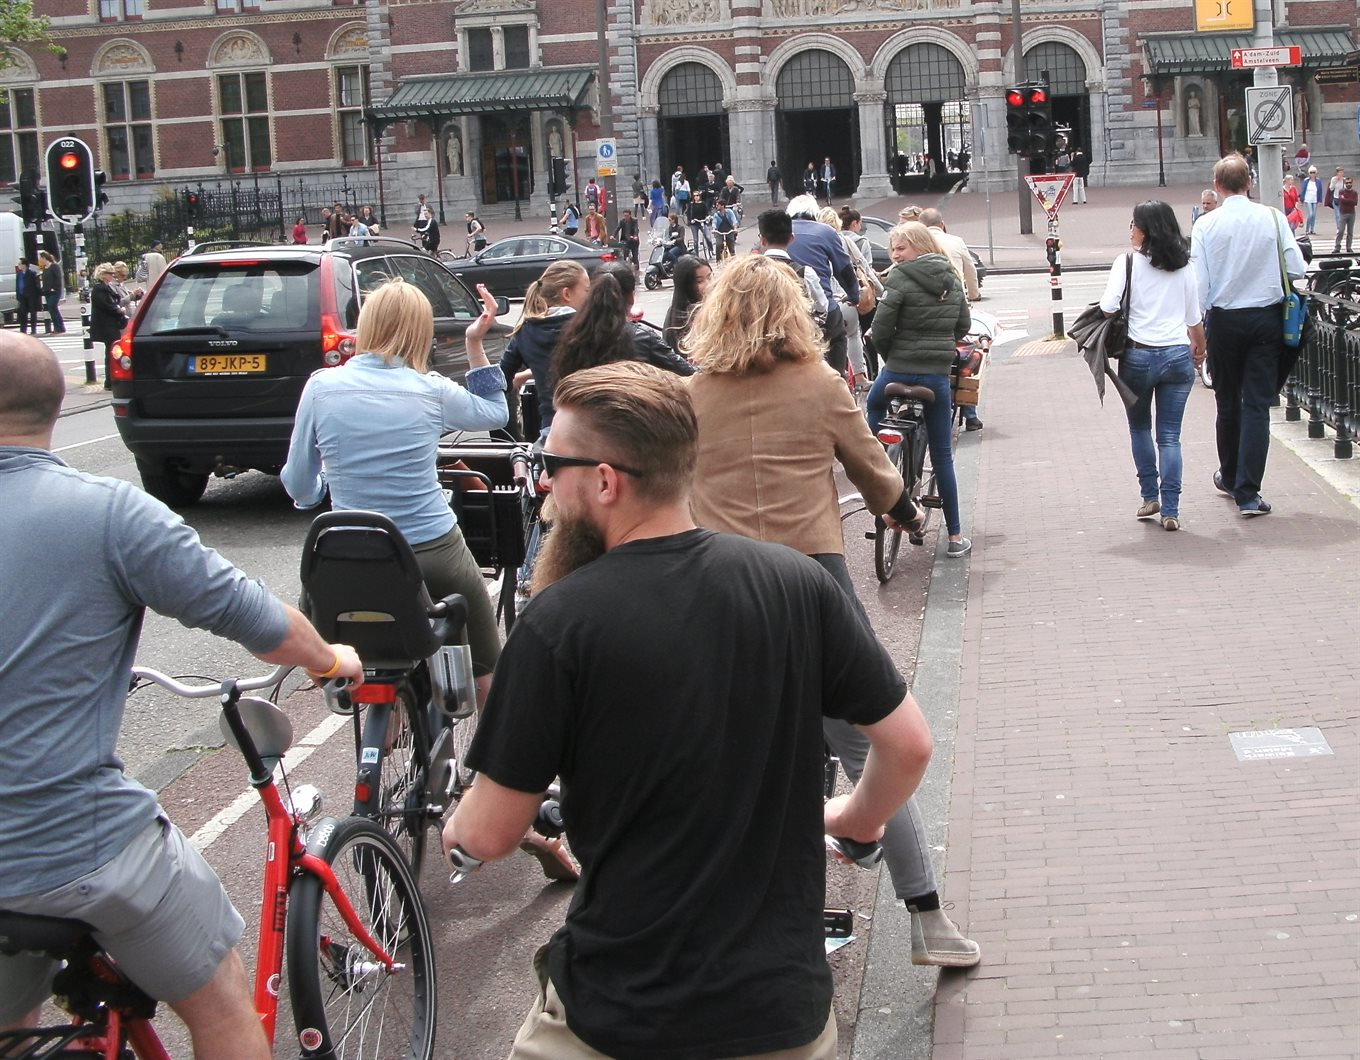 Amsterdam bike queue